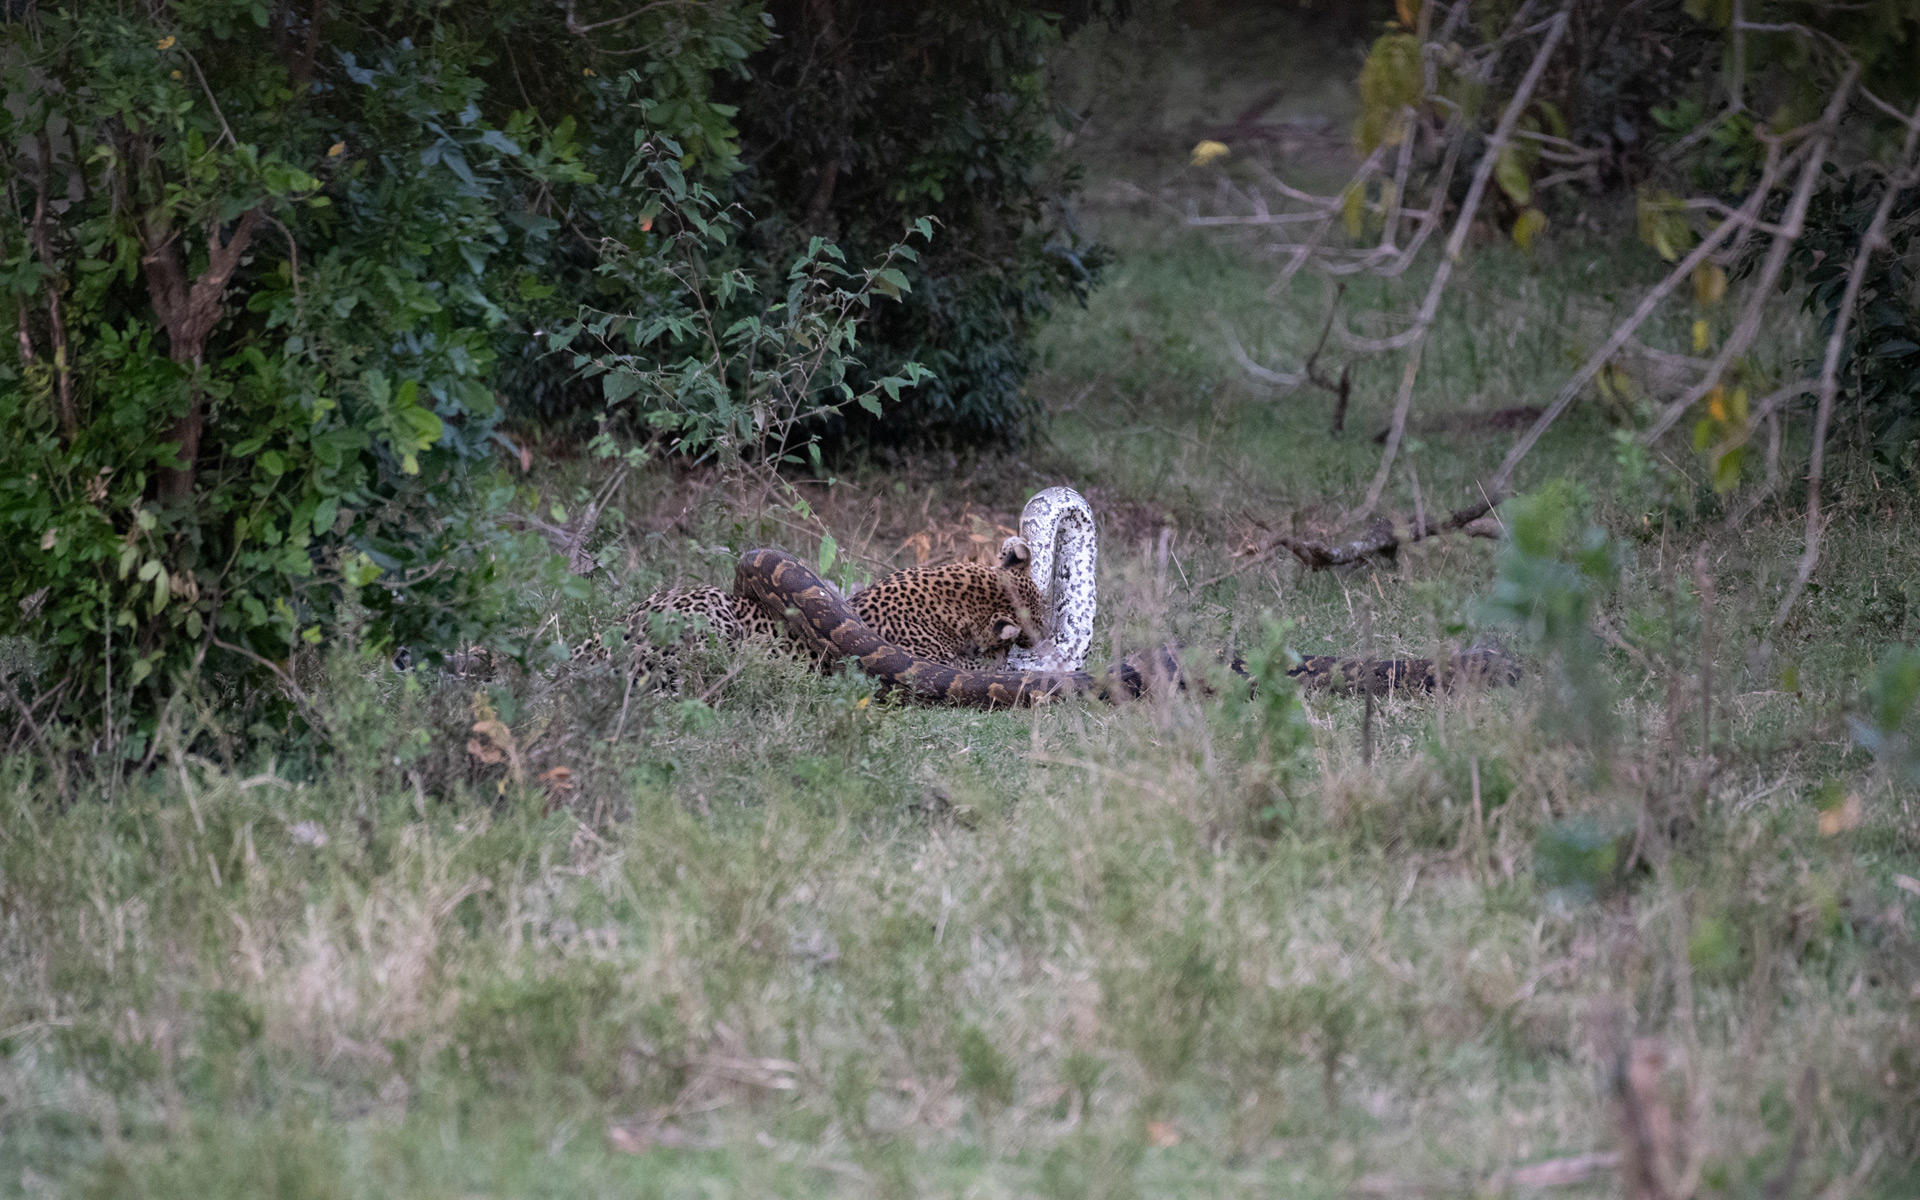 Leopard and python fight